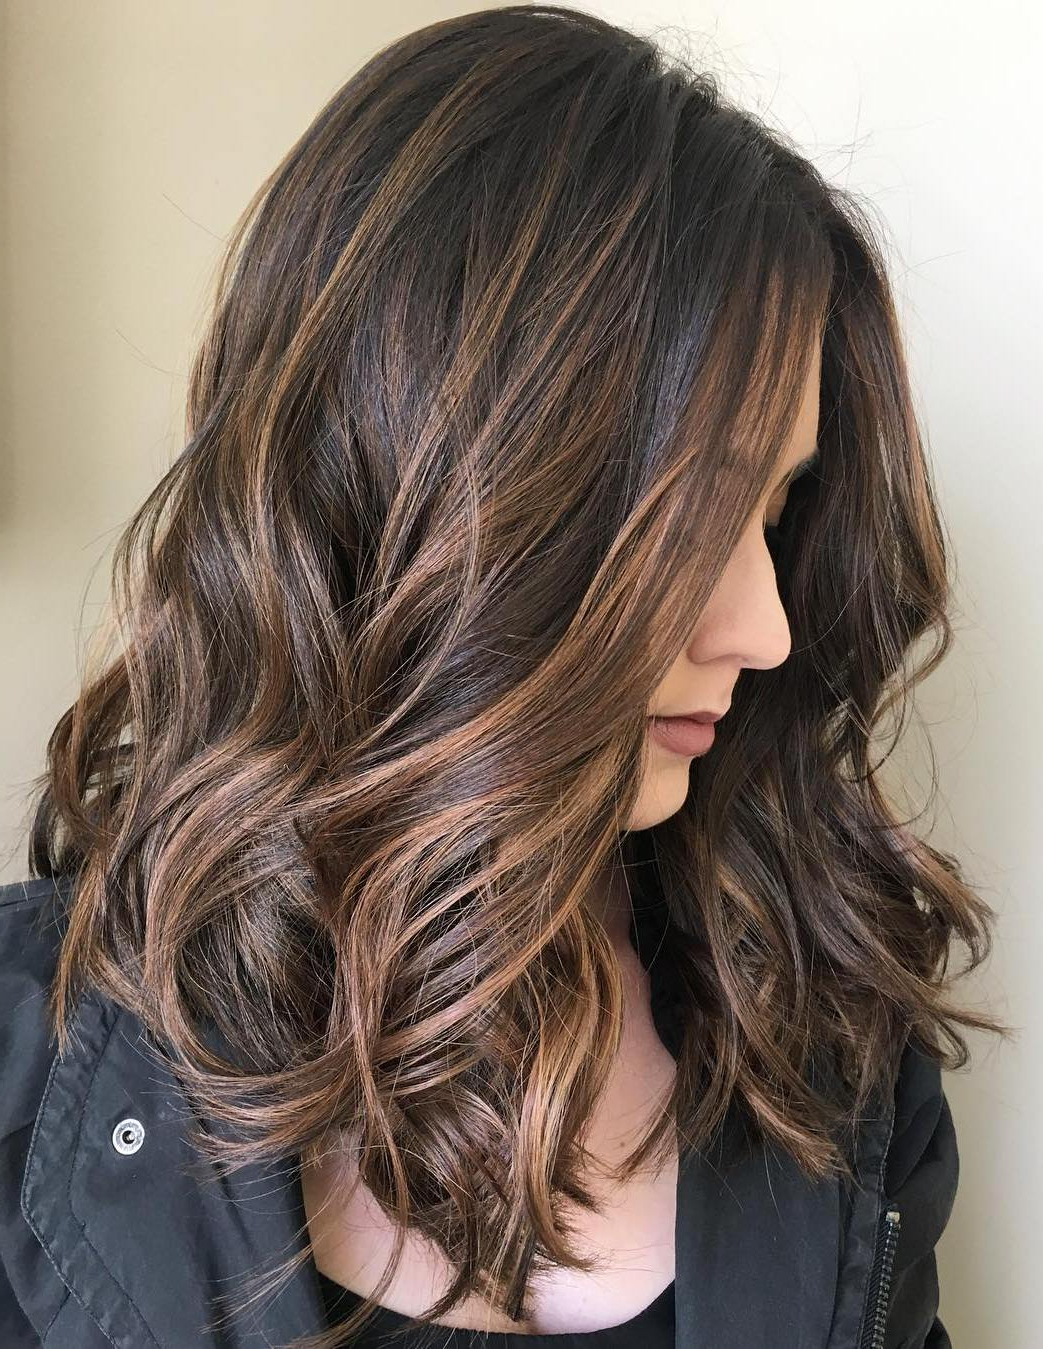 70 Balayage Hair Color Ideas With Blonde, Brown And Caramel Highlights Intended For Most Recent Medium Brown Tones Hairstyles With Subtle Highlights (View 10 of 20)